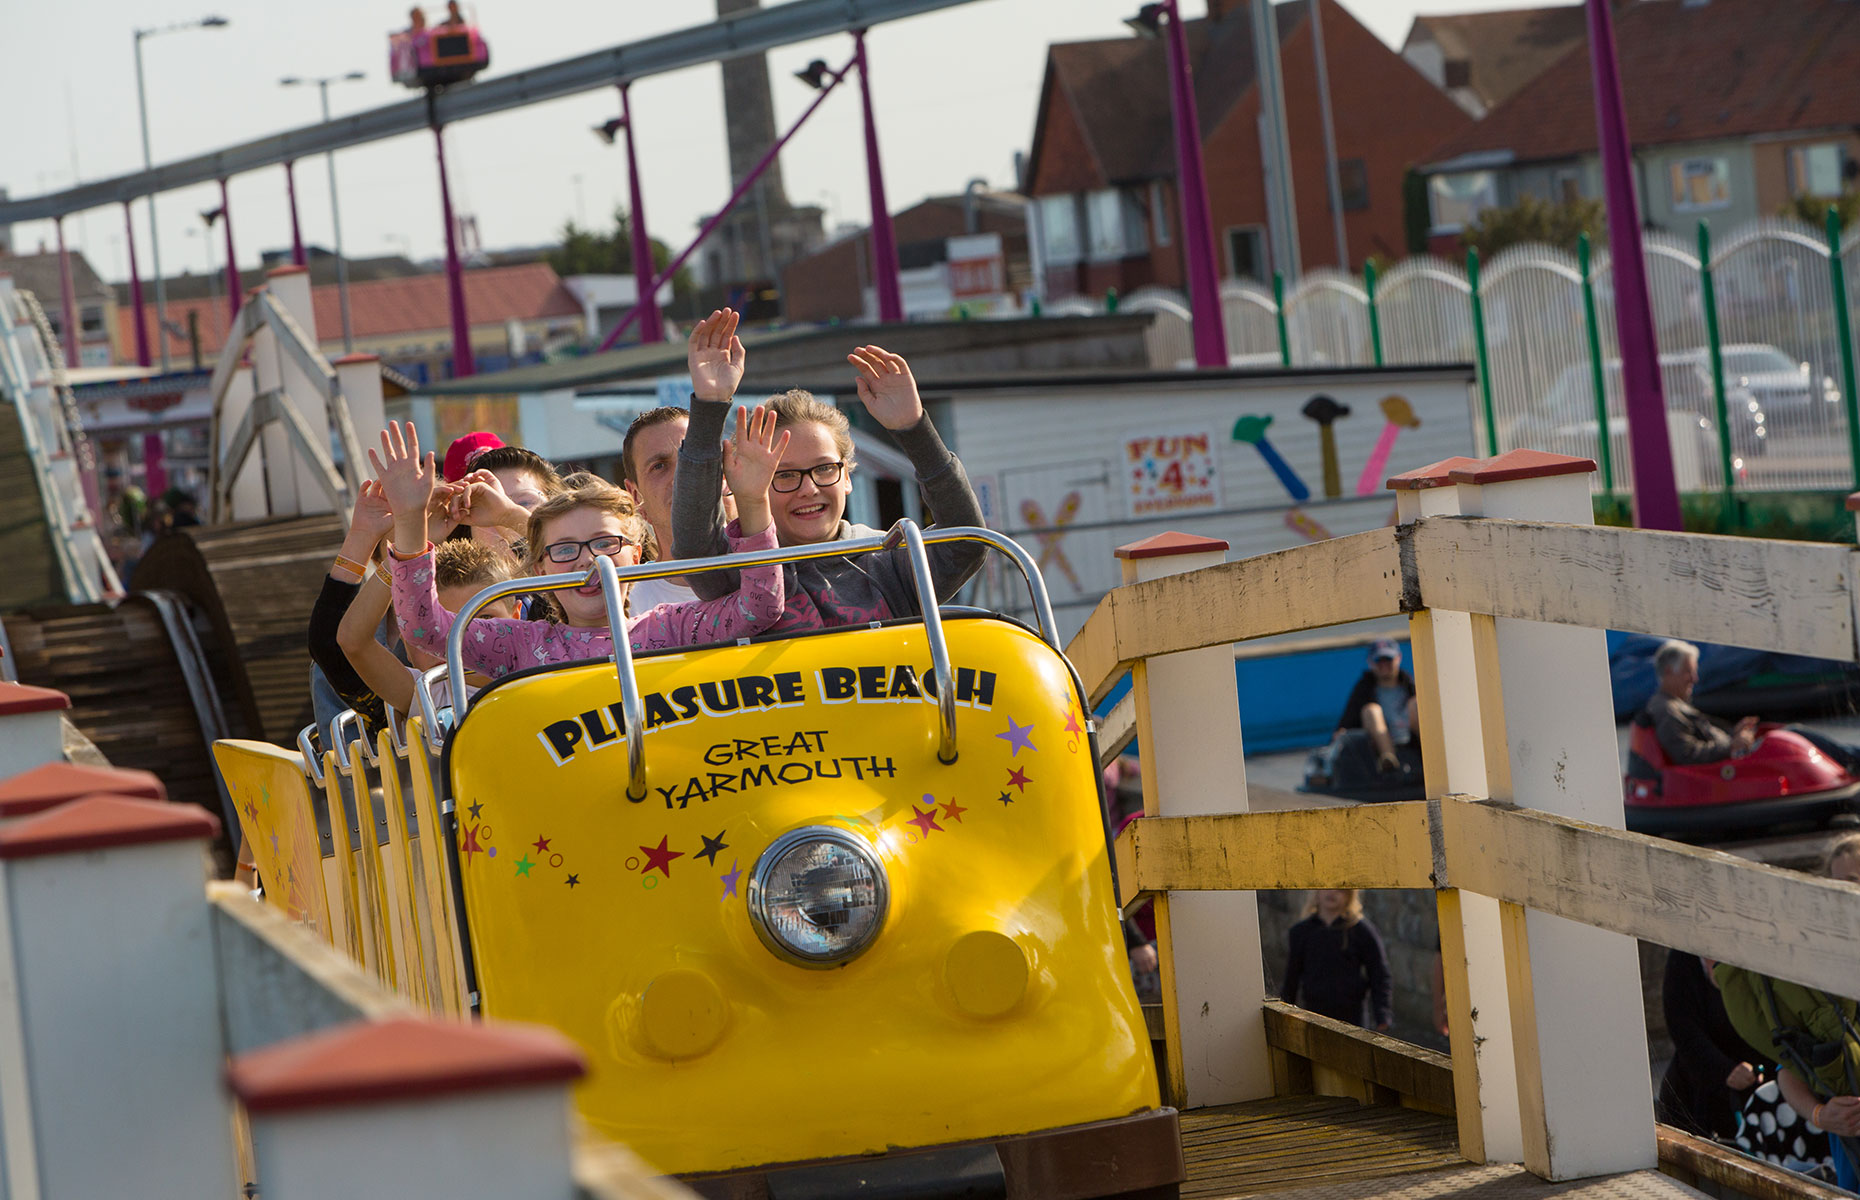 Kids having a whale of a time on a wooden rollercoaster at the Great Yarmouth Pleasure Beach (Image: Visit Great Yarmouth)